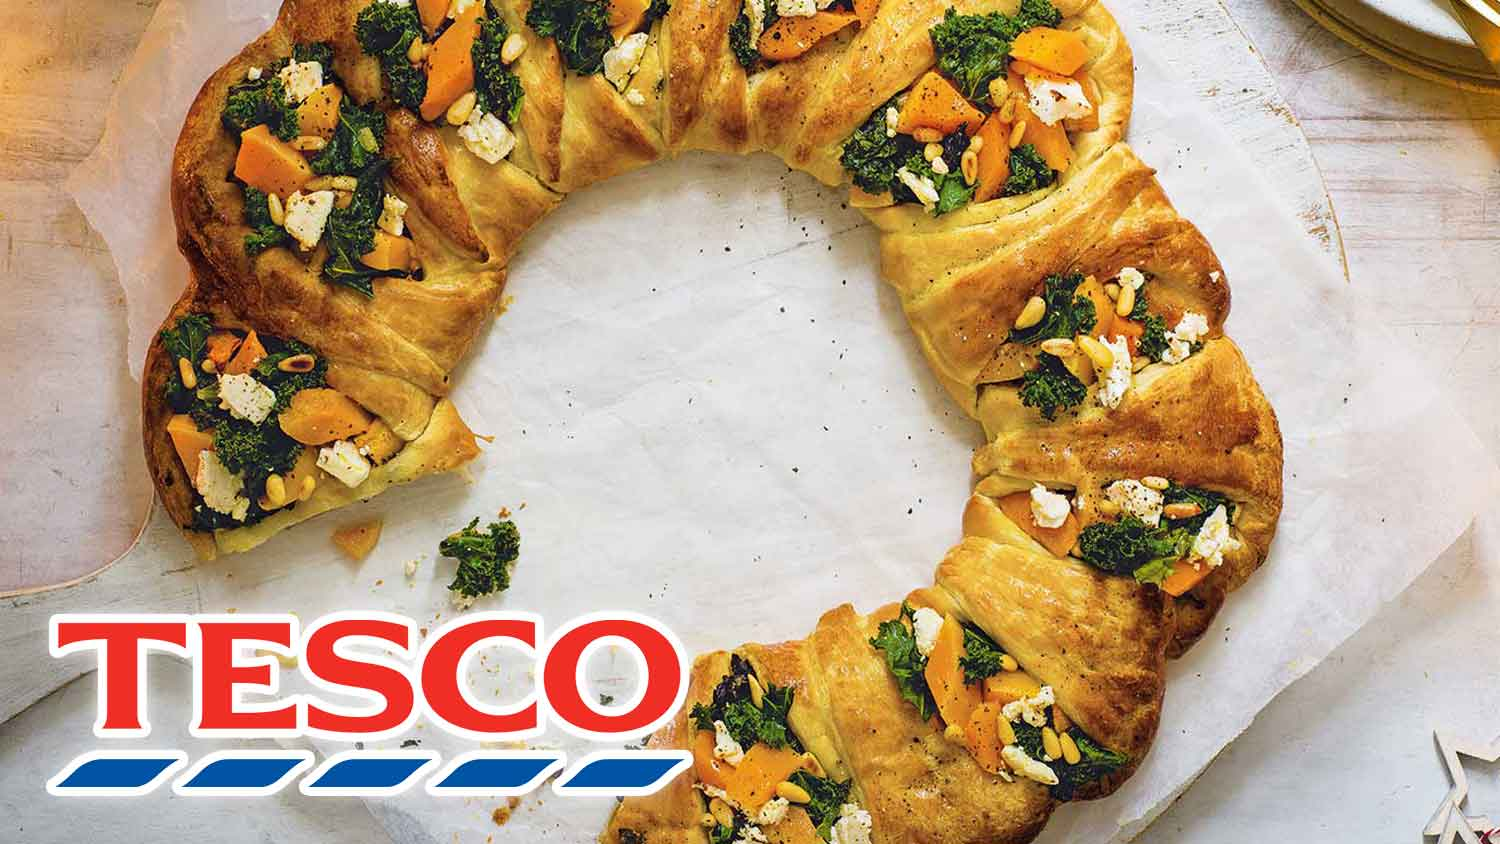 Tesco Just Debuted Its New Vegan Christmas Range